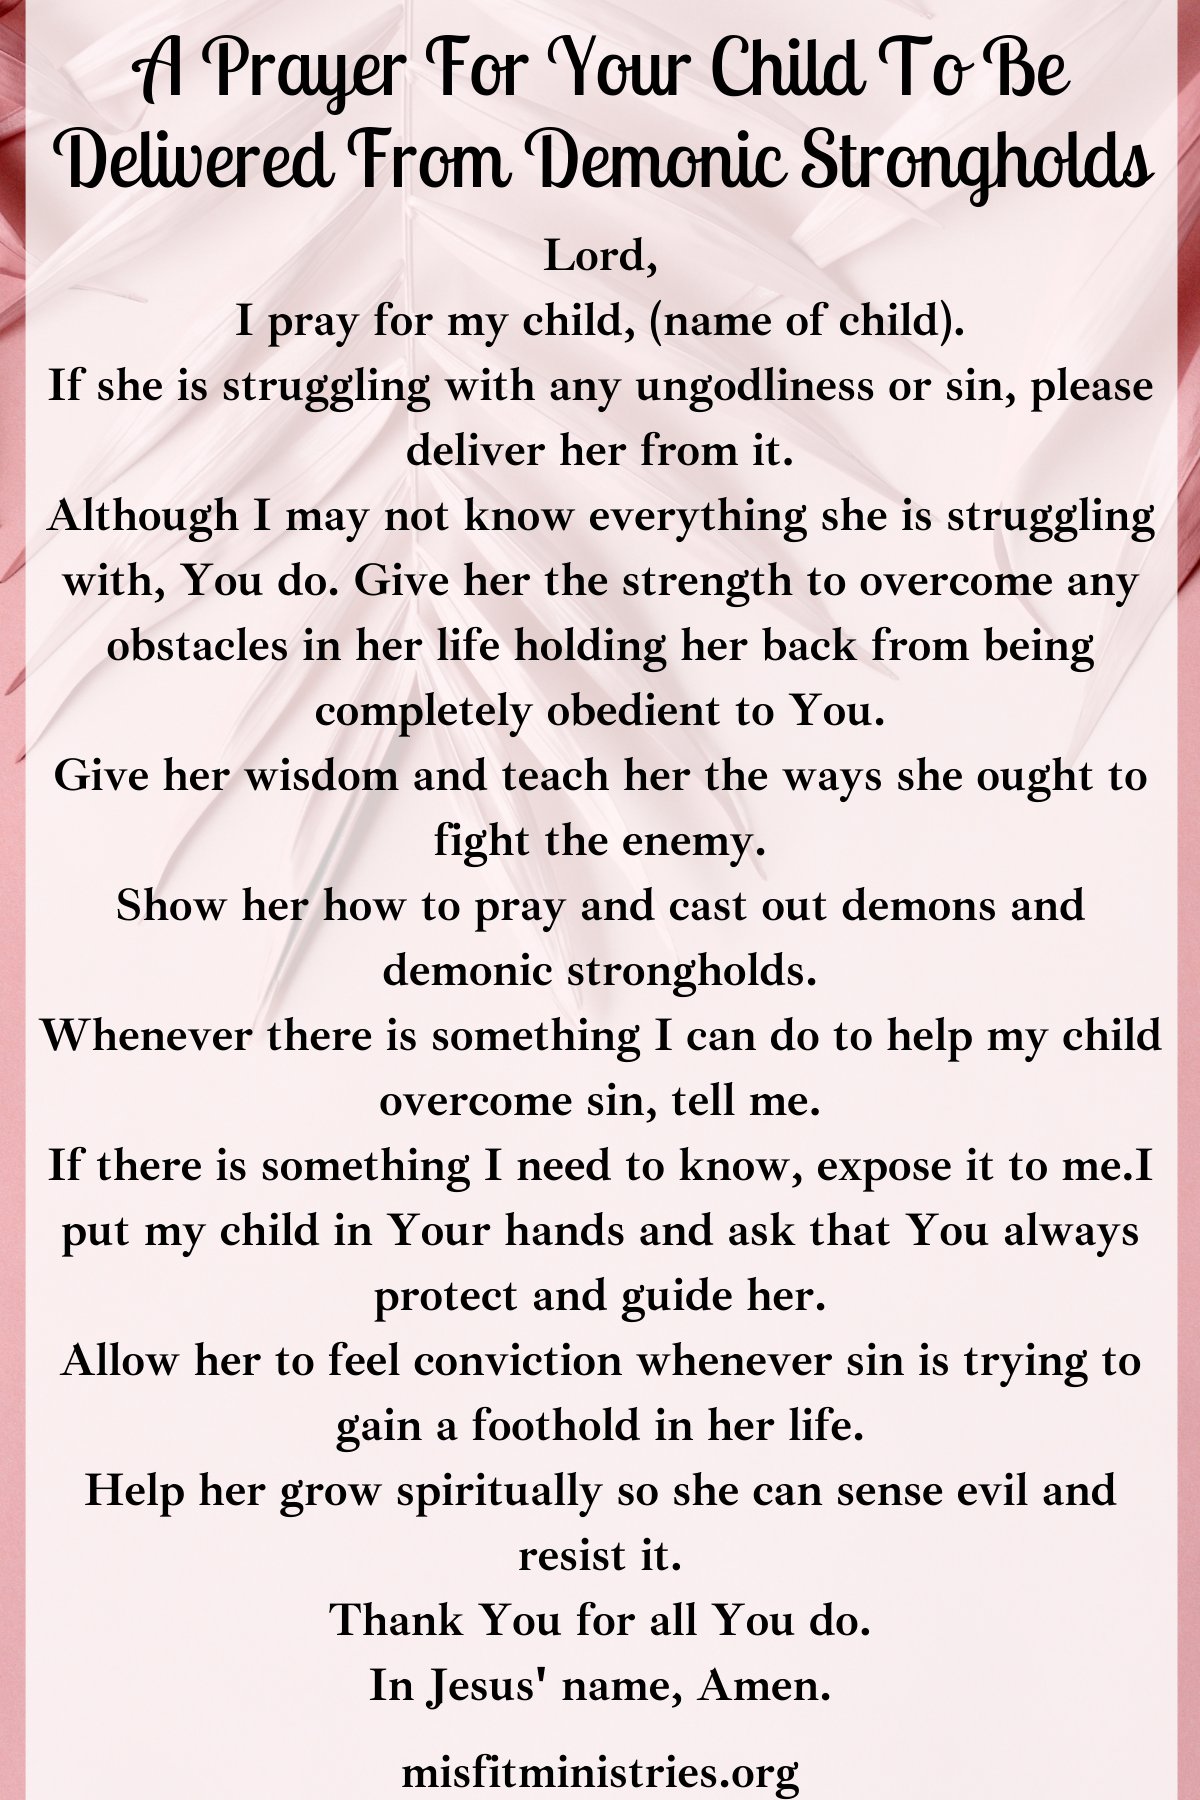 a prayer for your child to be delivered from demonic strongholds